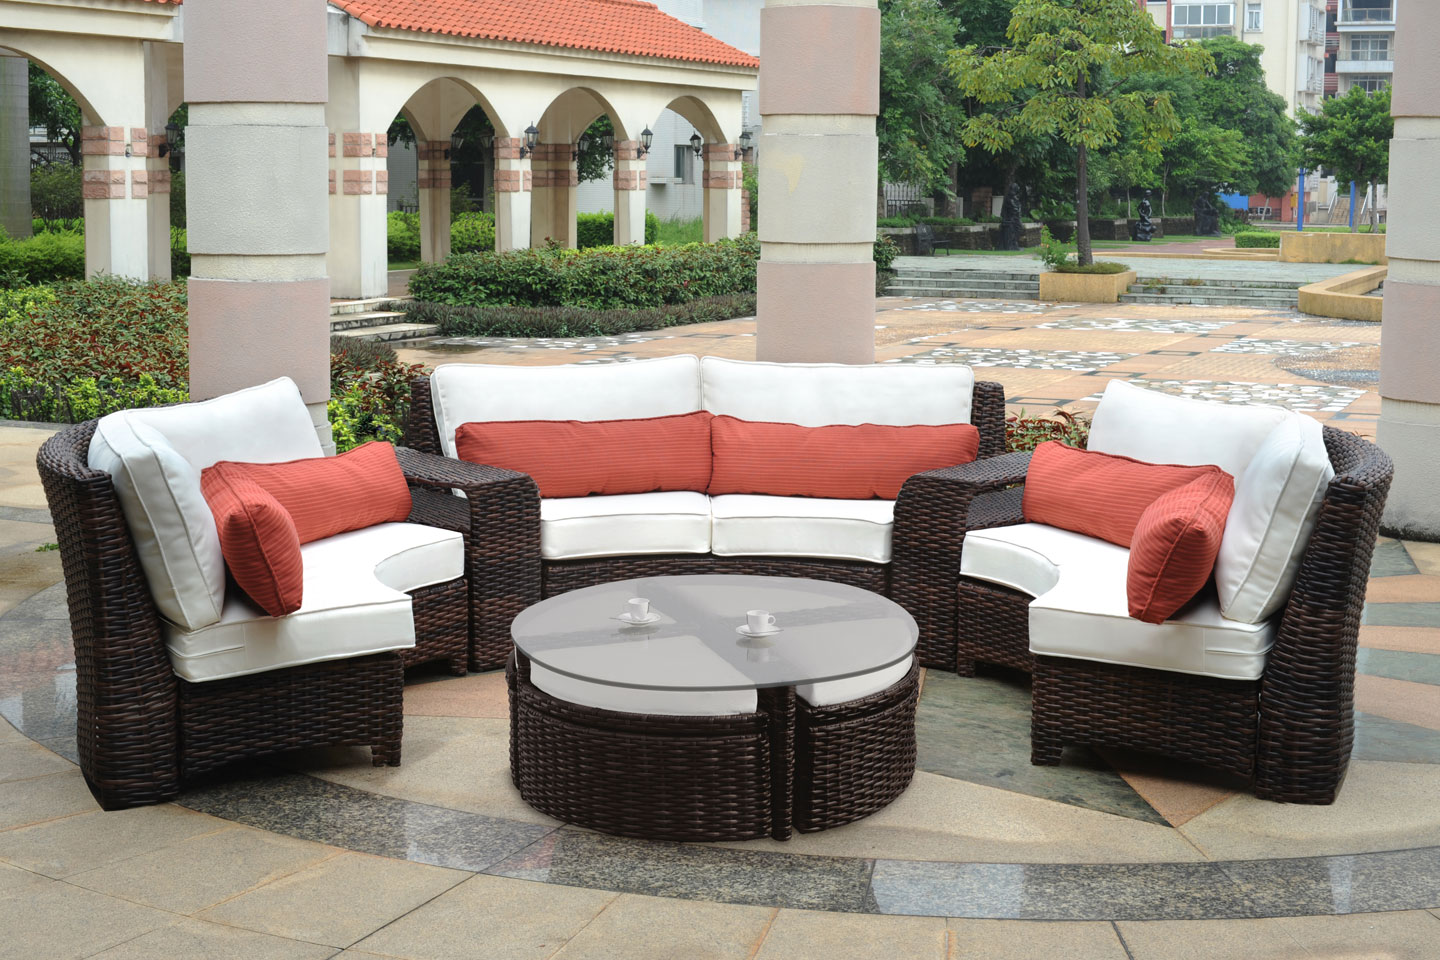 Fiji curved outdoor resin wicker patio sectional for Outdoor wicker furniture